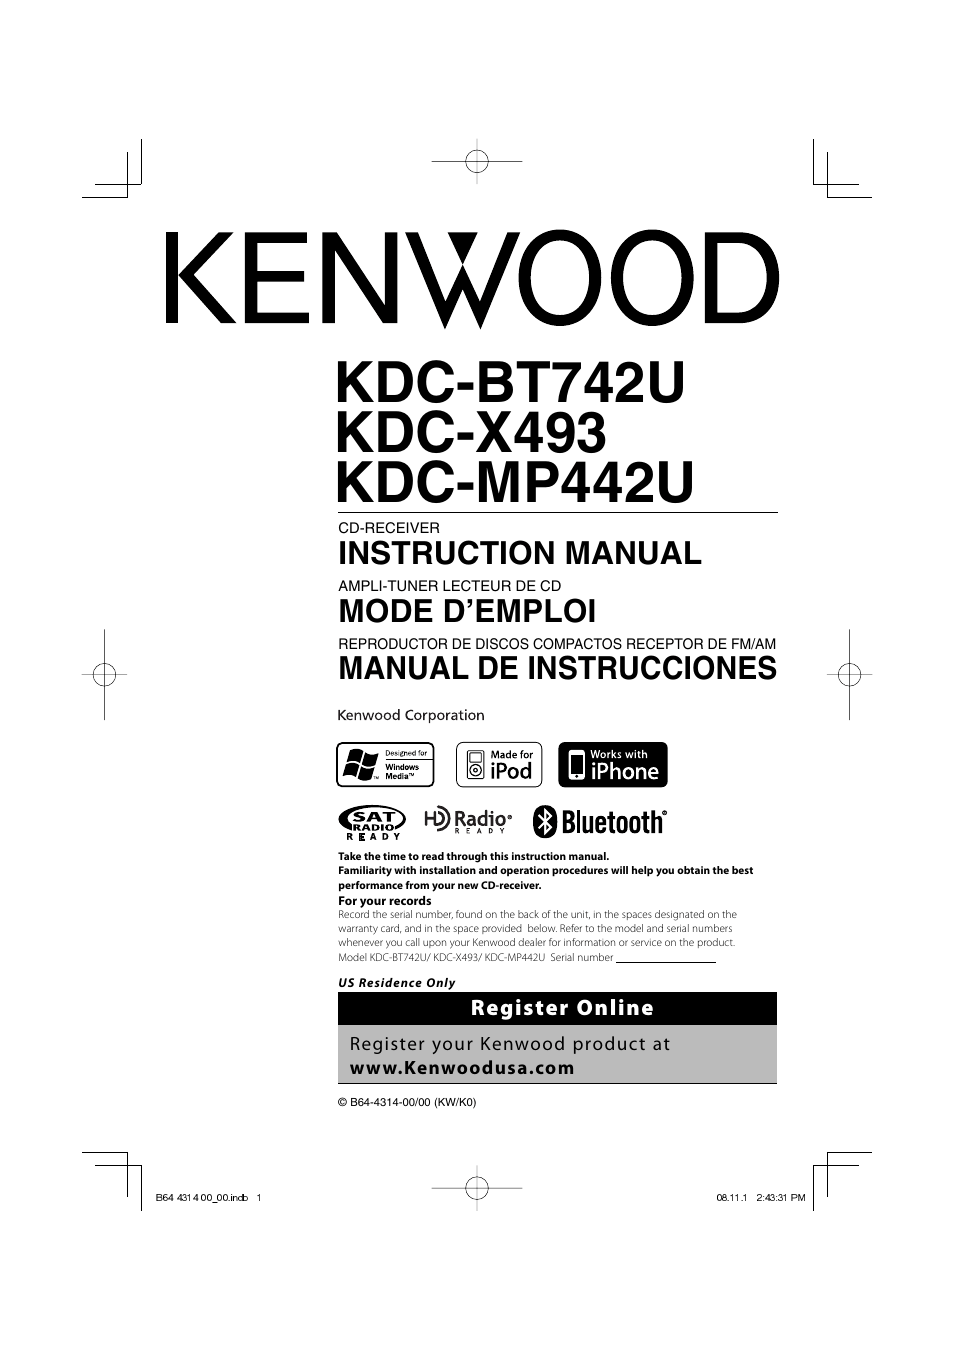 kenwood kdc bt742u page1?resize\\=665%2C940 kenwood kdc x492 wiring diagram kenwood wiring diagrams collection kenwood kdc-mp2035 wiring diagram at crackthecode.co